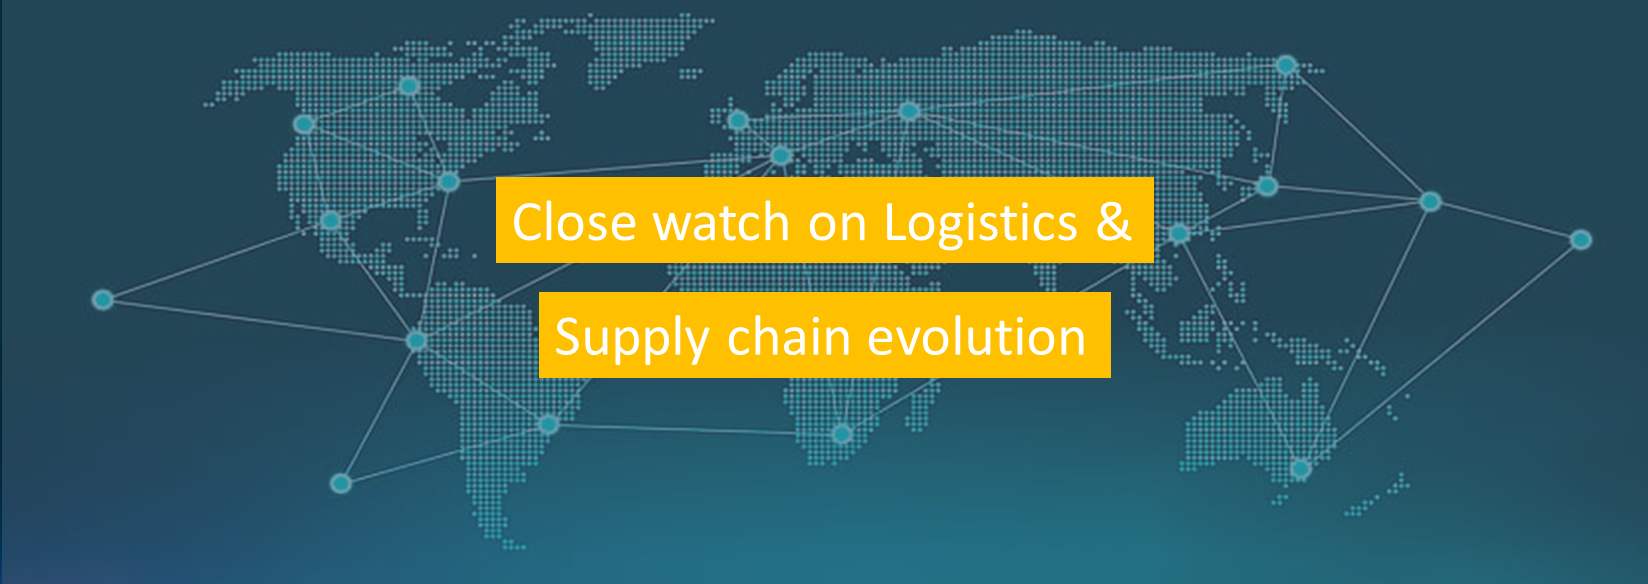 logistics evolution